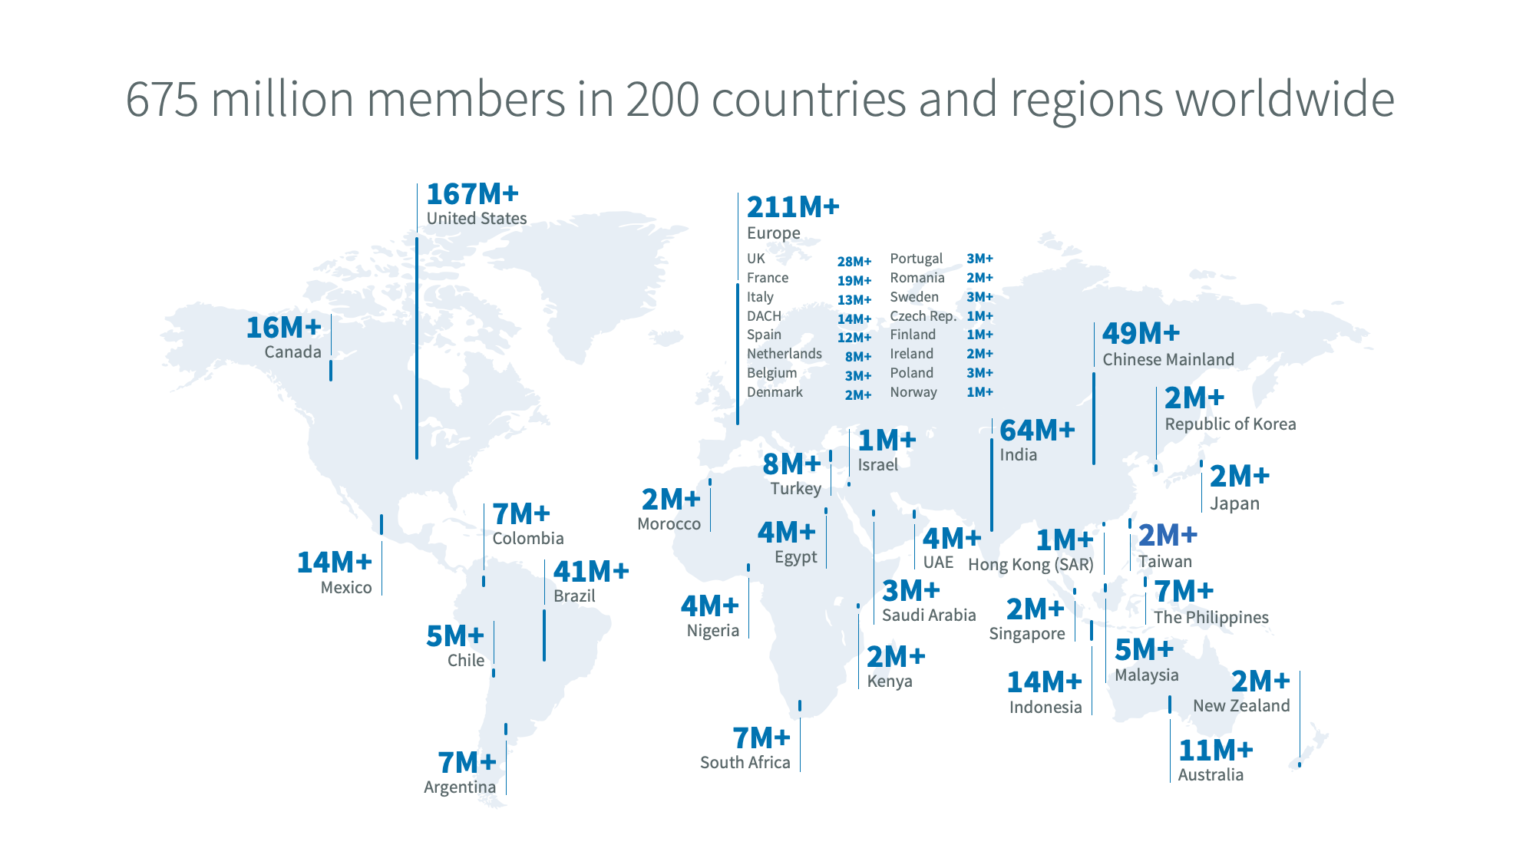 Number of LinkedIn users by country on the map